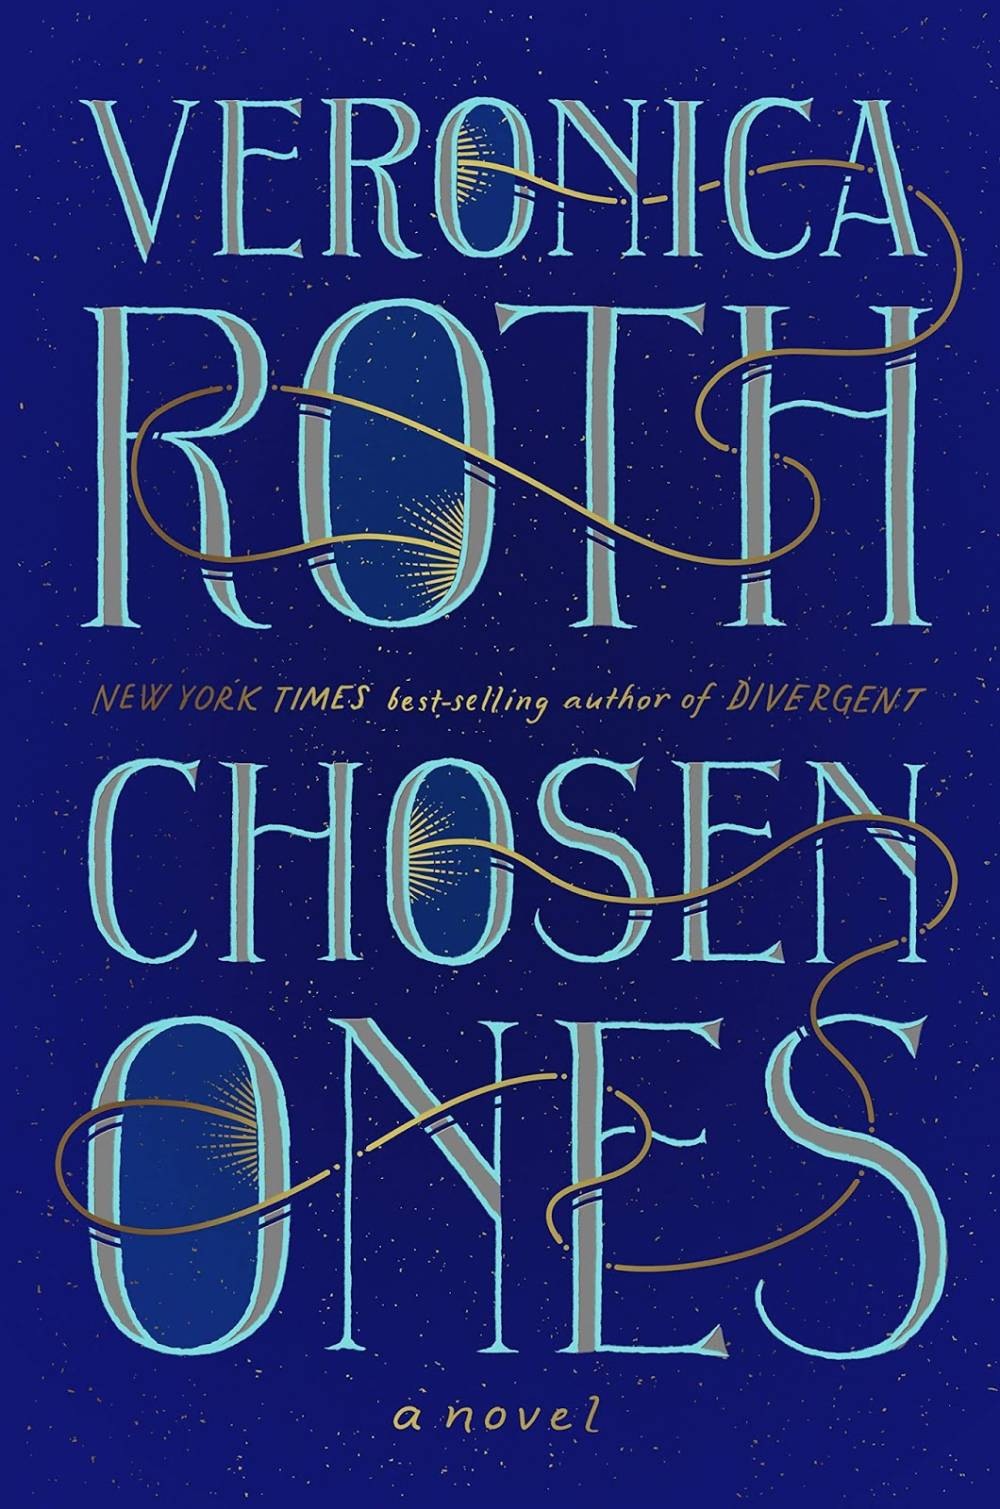 'Chosen Ones' by Veronica Roth